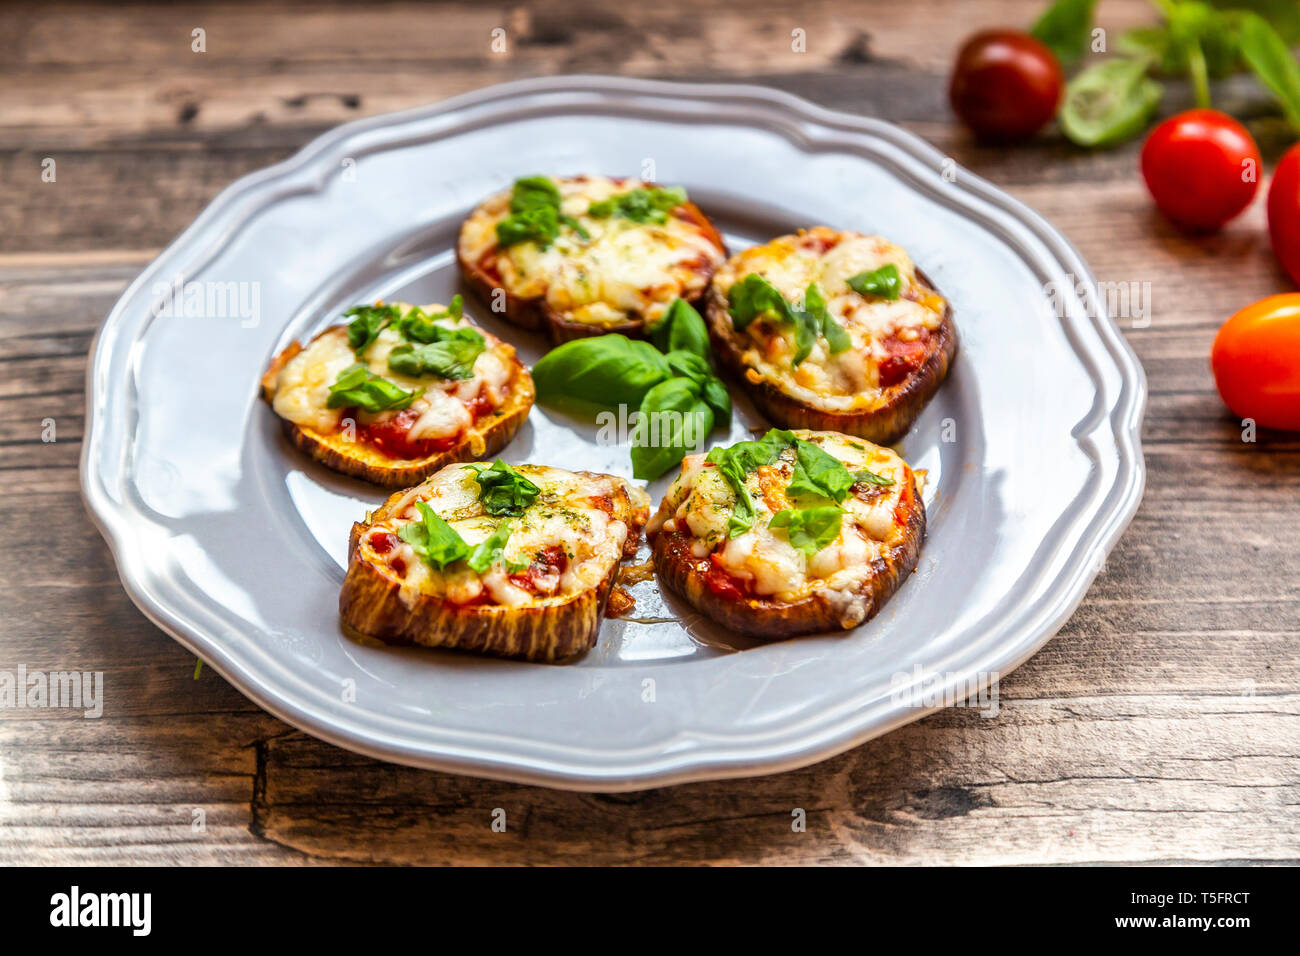 Aubergine pizza, aubergine slices with tomato sauce and cheese, gratinated, low carb - Stock Image